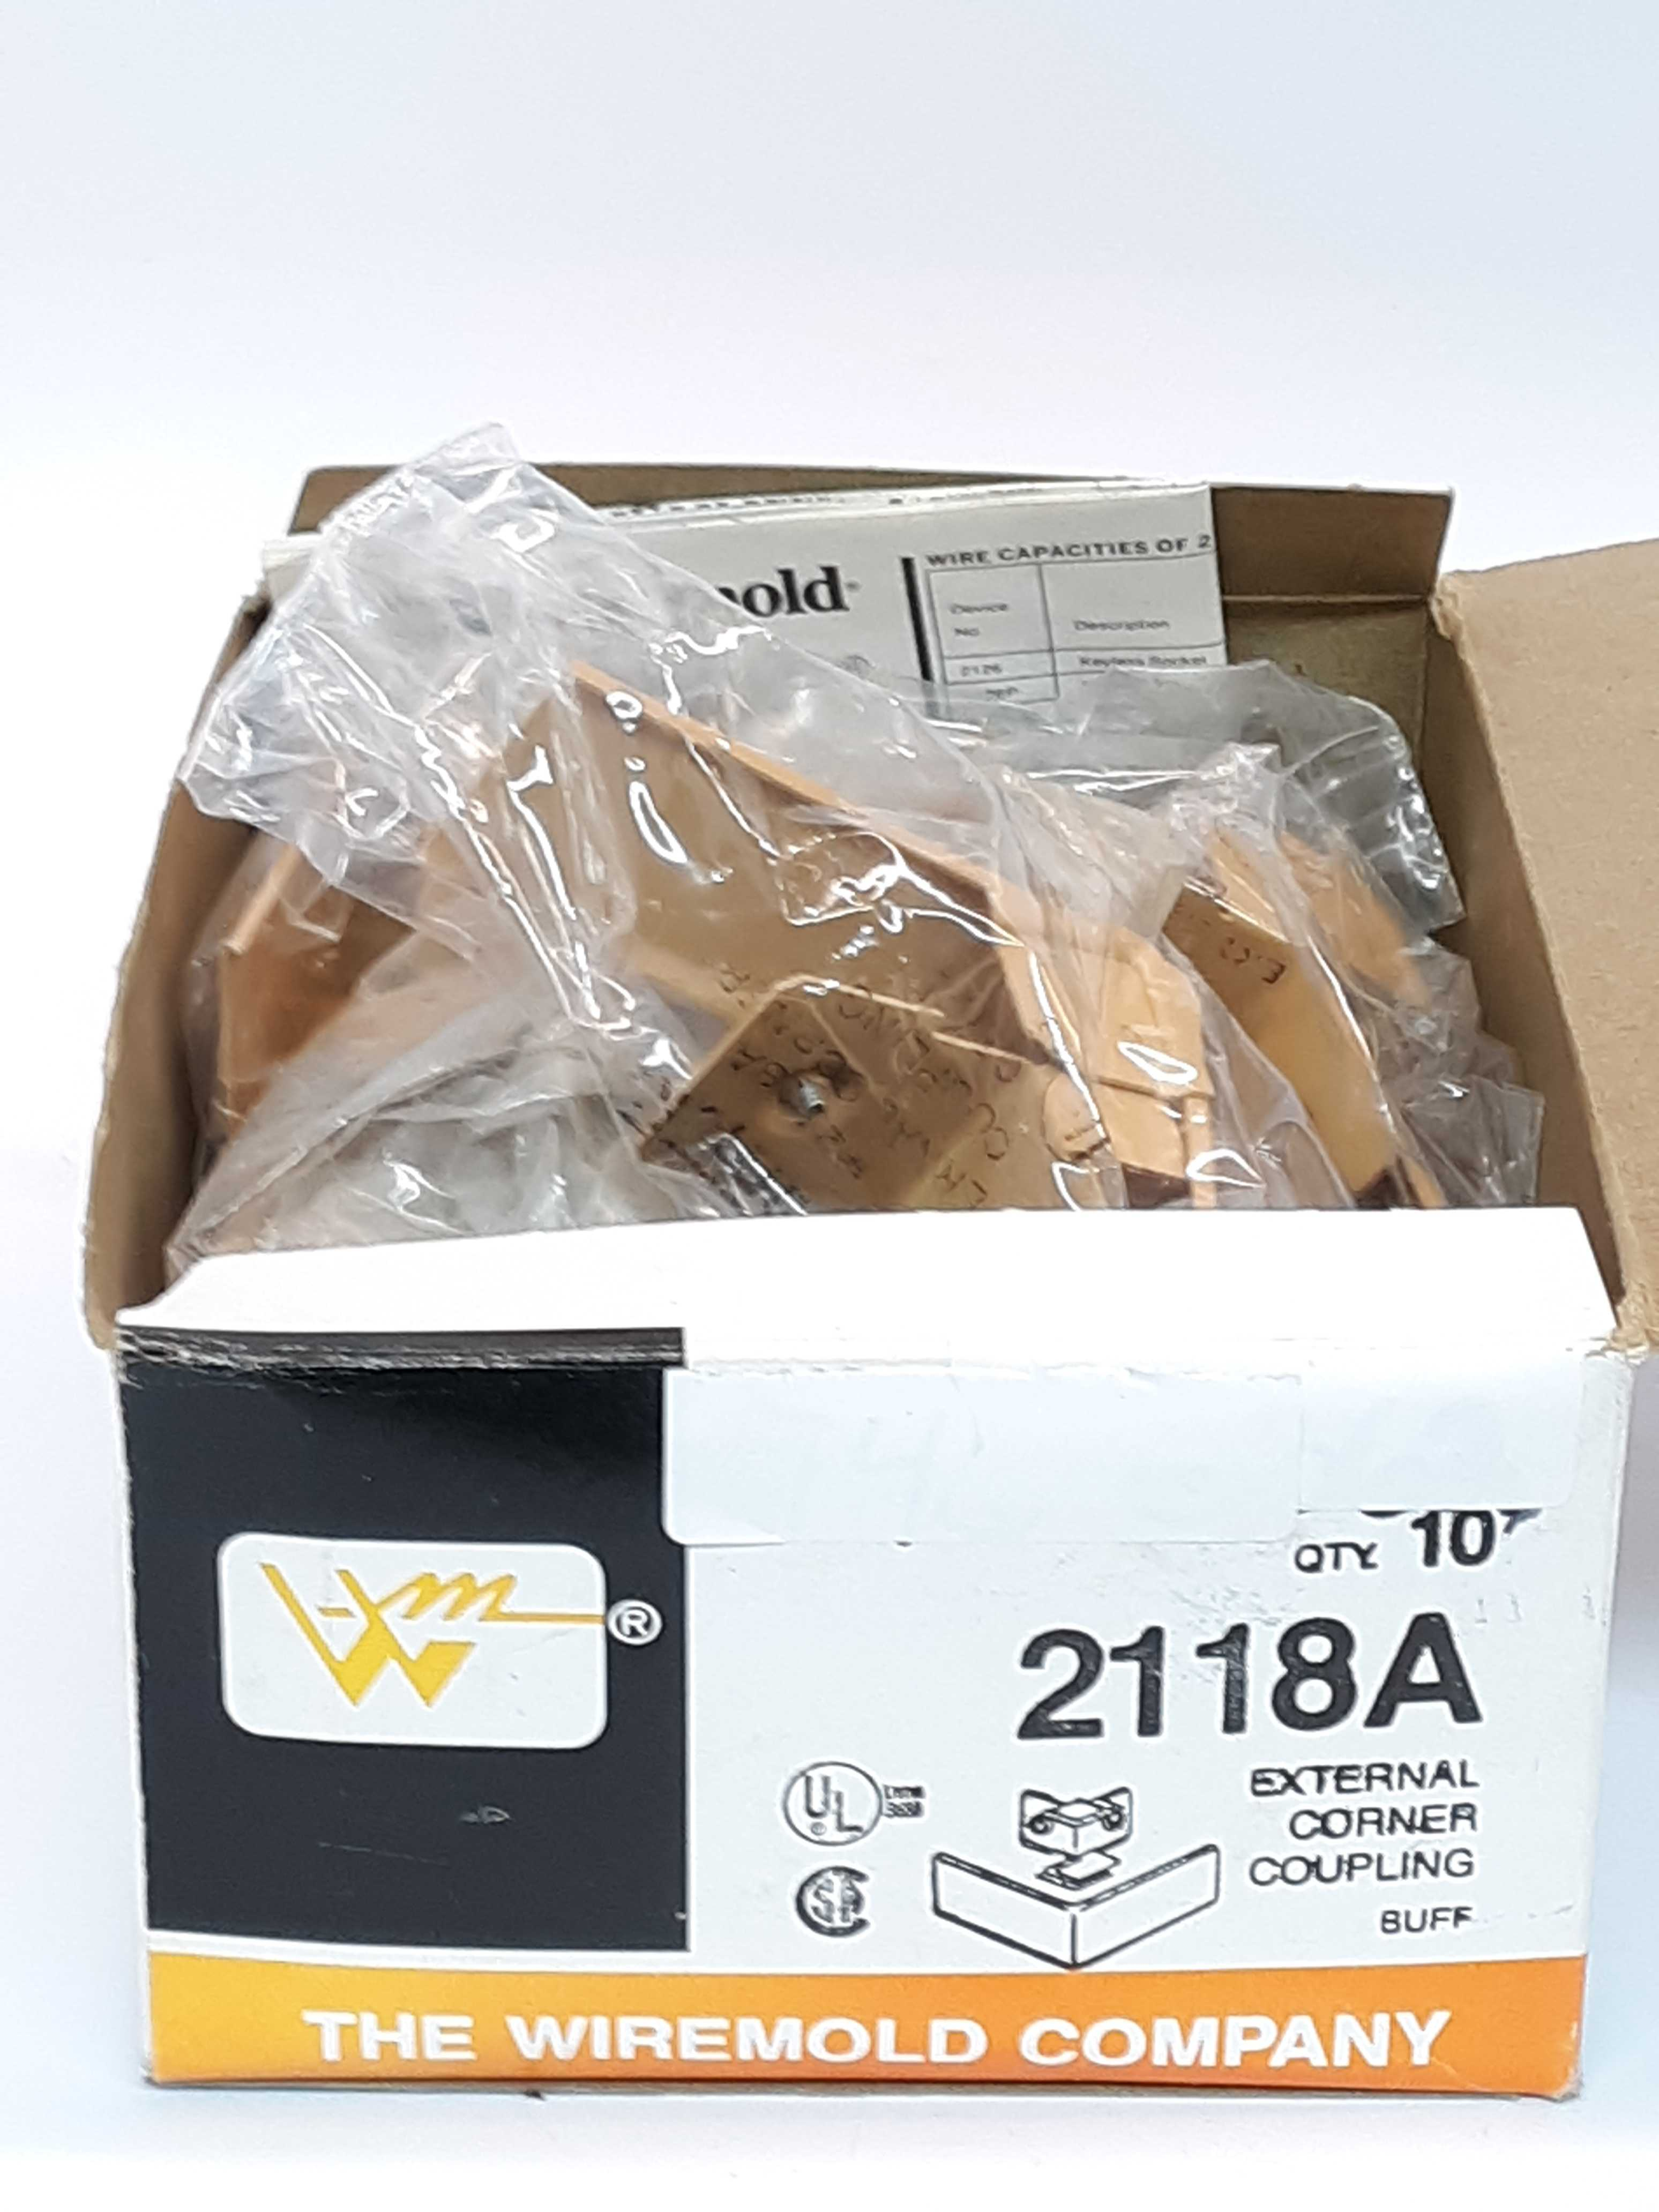 Wiremold 2118A  External Corner Coupling   Lot of 10